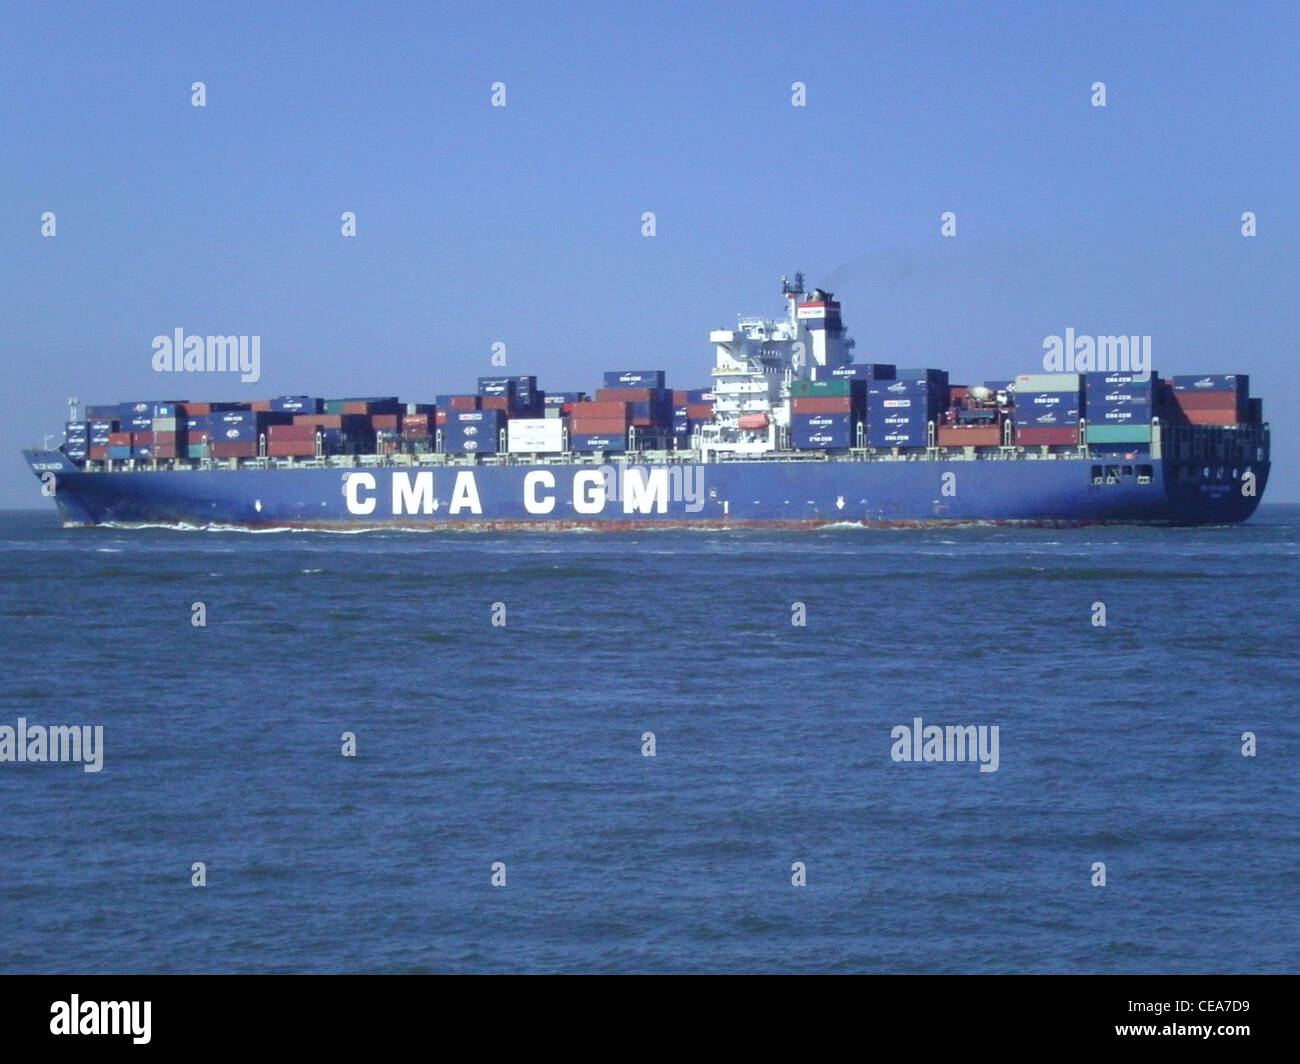 The container ship CMA CGM Wagner from the French shipping company CGA CGM outbound on the River Elbe near Cuxhaven - Stock Image